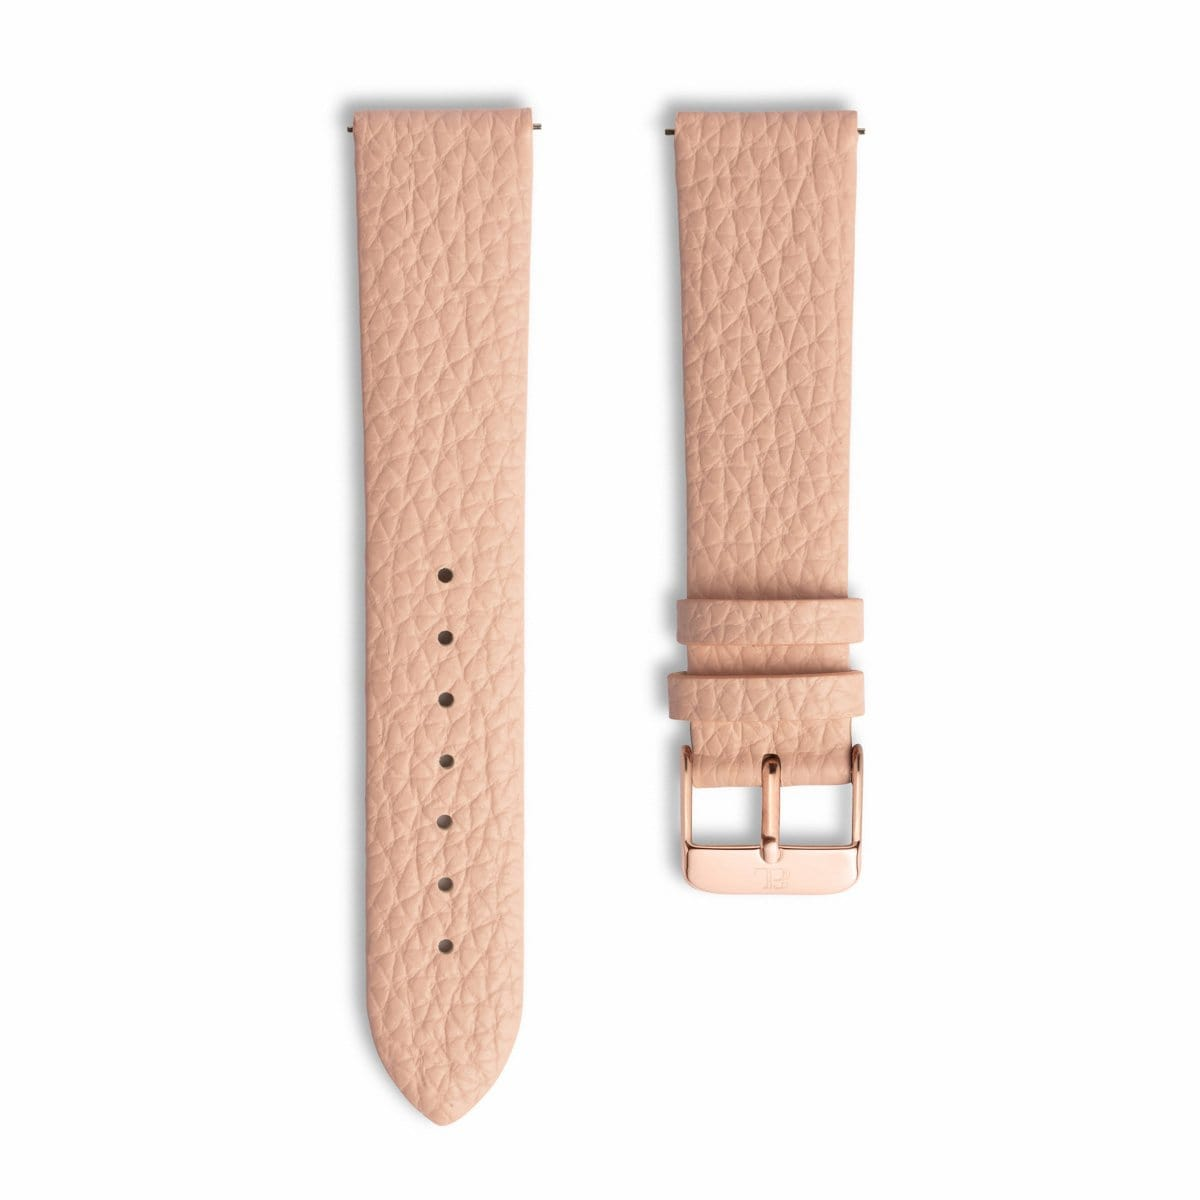 Chain Blush Stellar 40 & Strap Gift Set